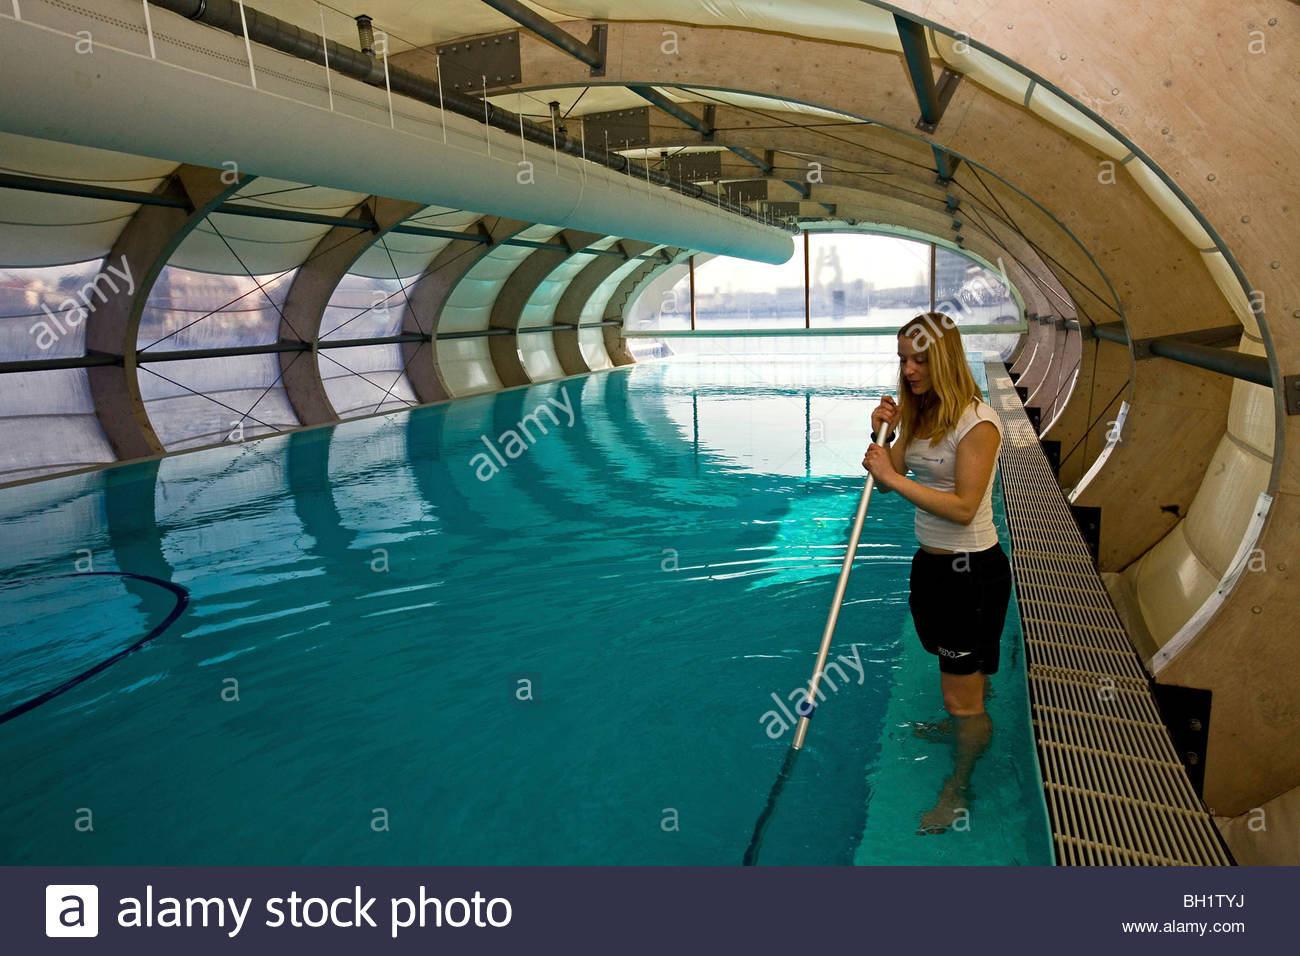 Swimming Pools In Berlin Badeschiff Cleaning The Floating Swimming Pool Berlin Stock